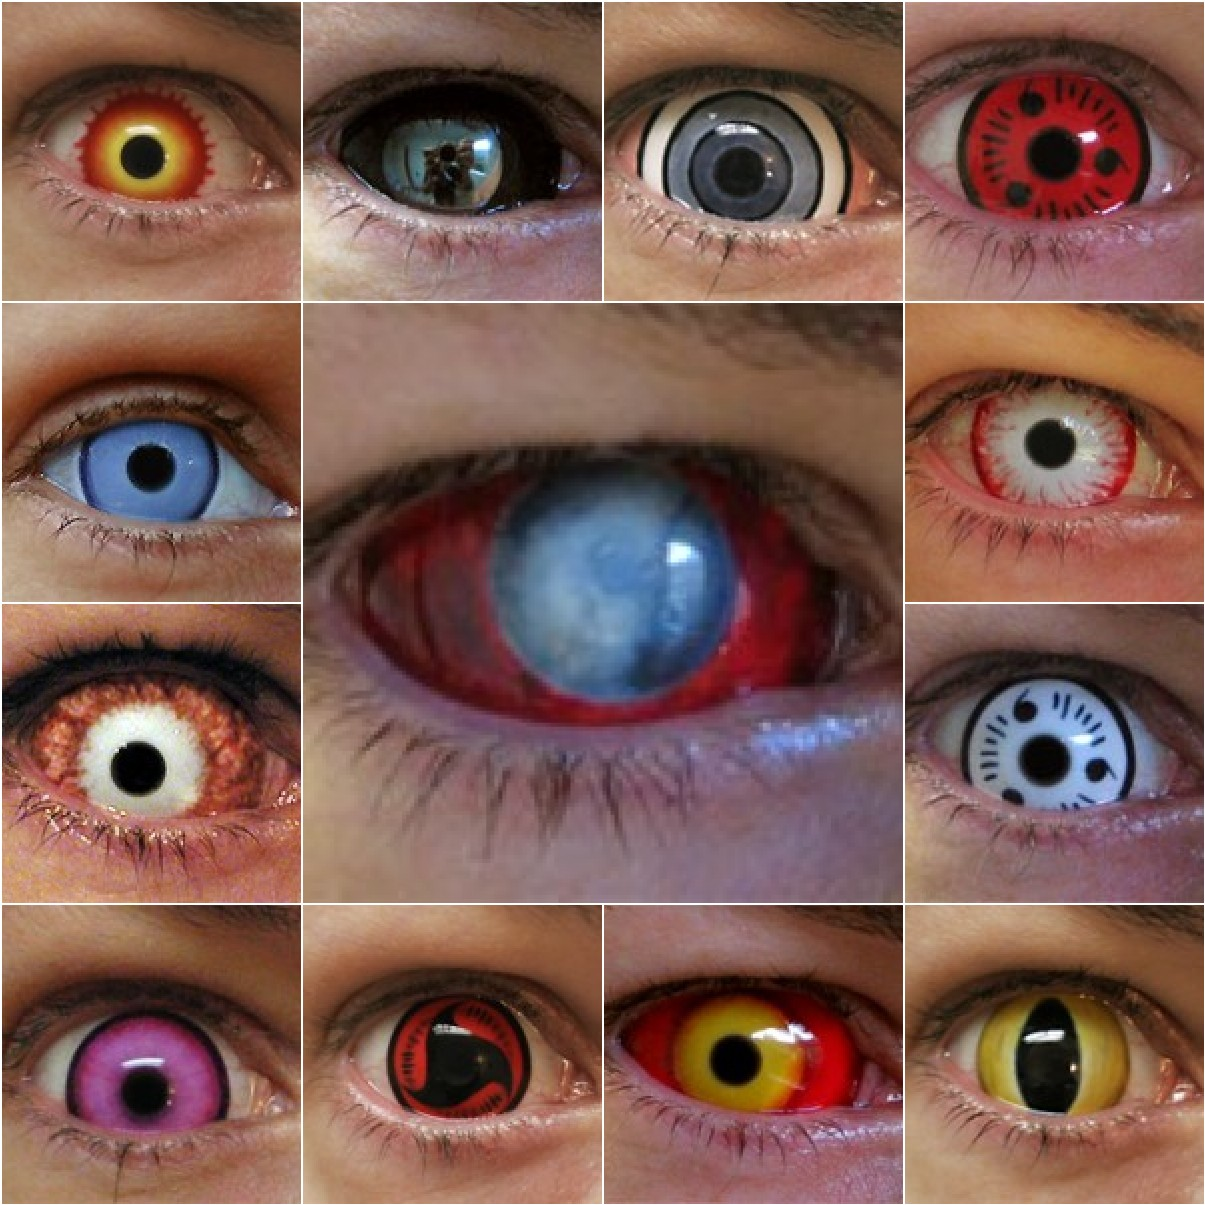 Odd Styles To Choose From Like Alien Styled Eyes Or Even Cat Eyes With